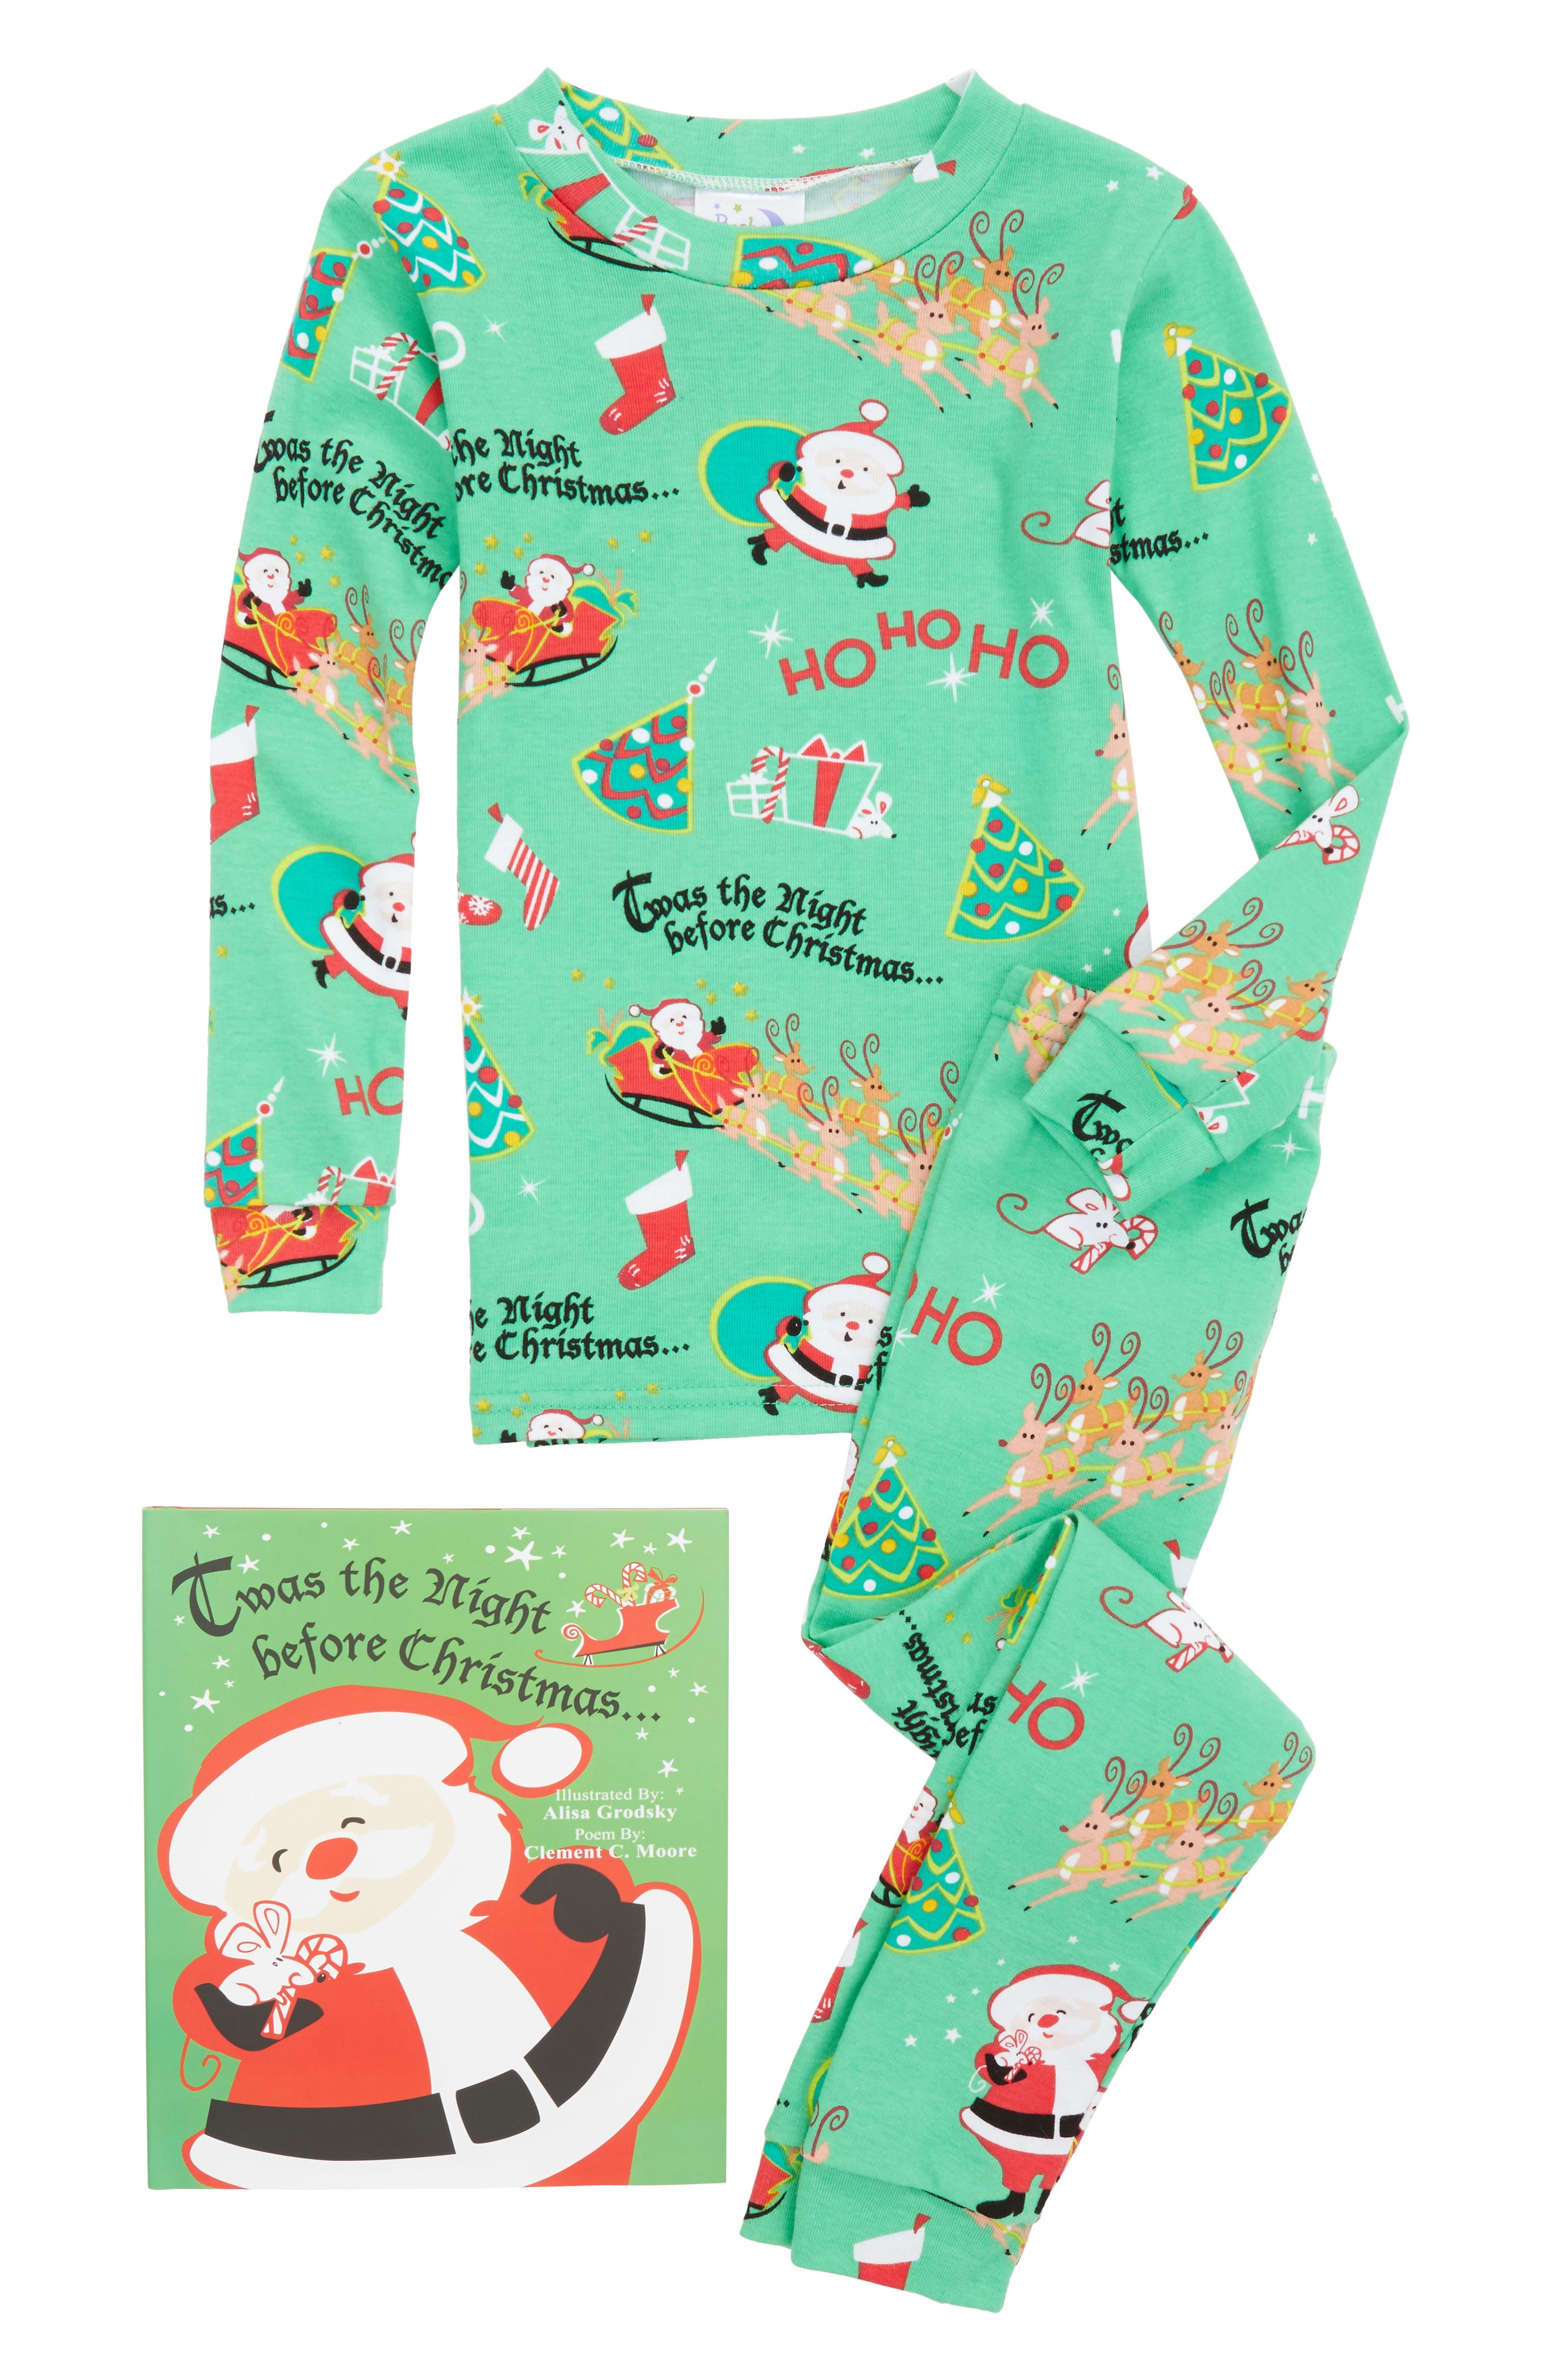 Twas the Night Before Christmas Fitted Two-Piece Pajamas & Book Set,                             Main thumbnail 1, color,                             300